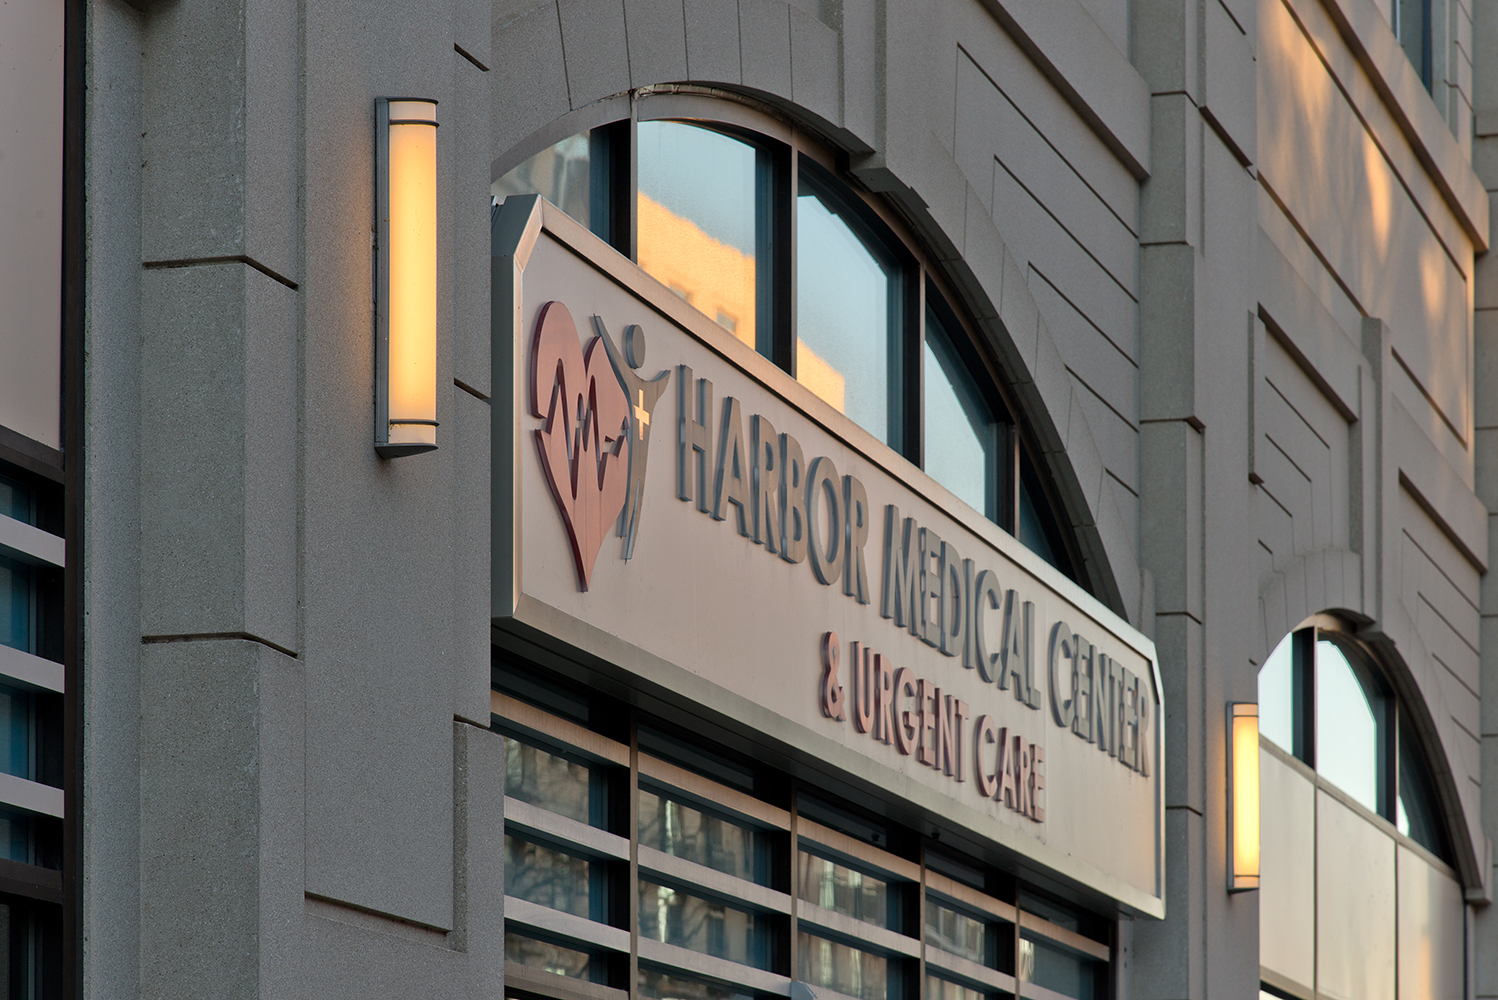 Raven outdoor light fixtures along a large medical center sign, mounted vertically.